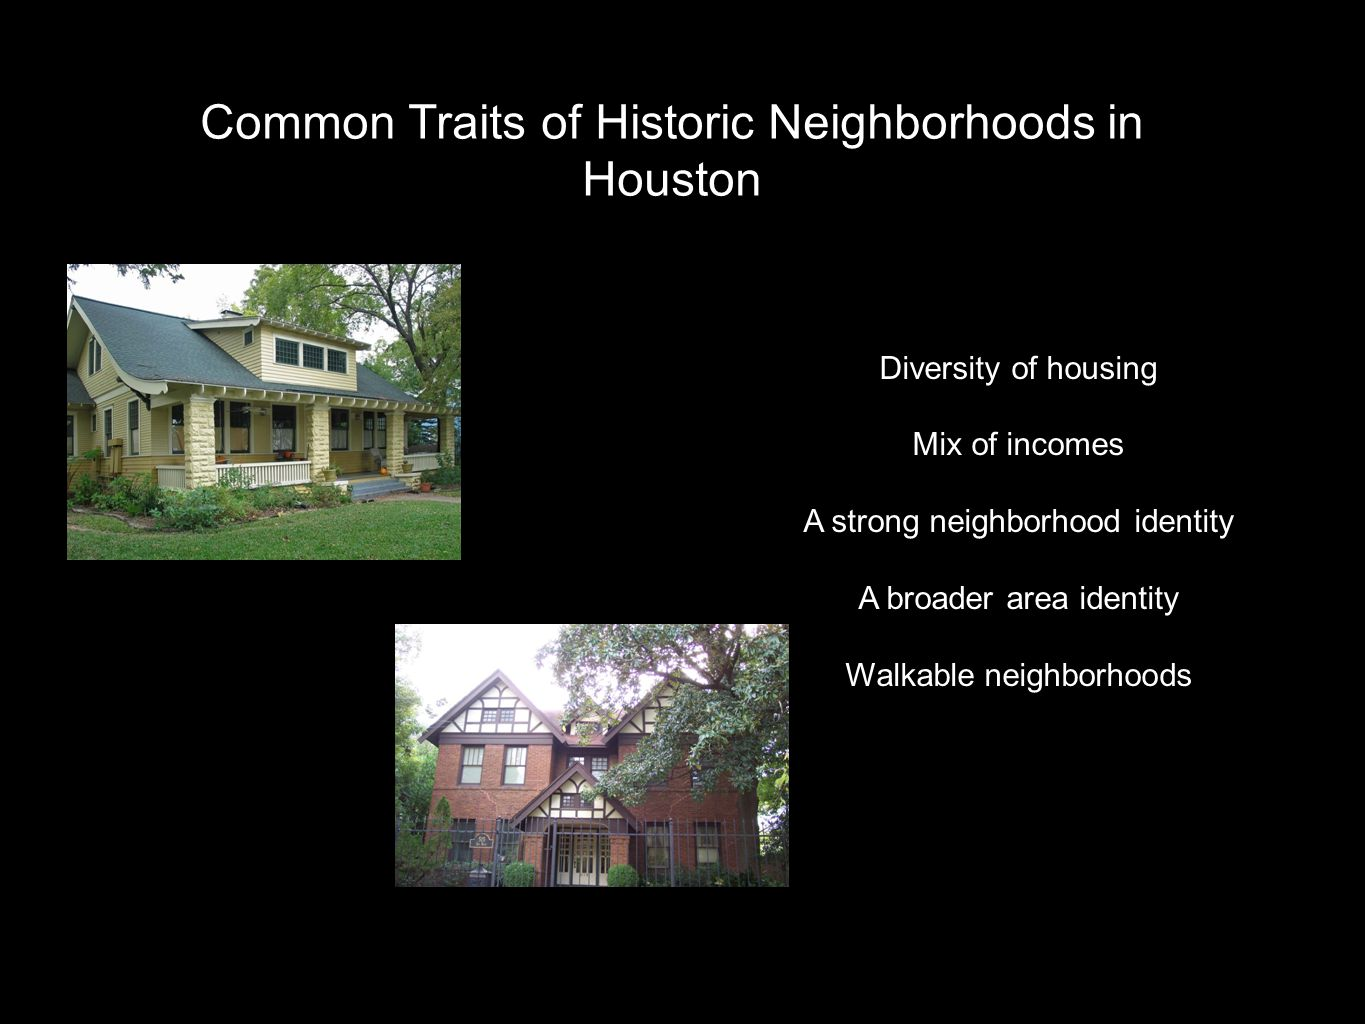 Common Traits of Historic Neighborhoods in Houston Diversity of housing Mix of incomes A strong neighborhood identity A broader area identity Walkable neighborhoods